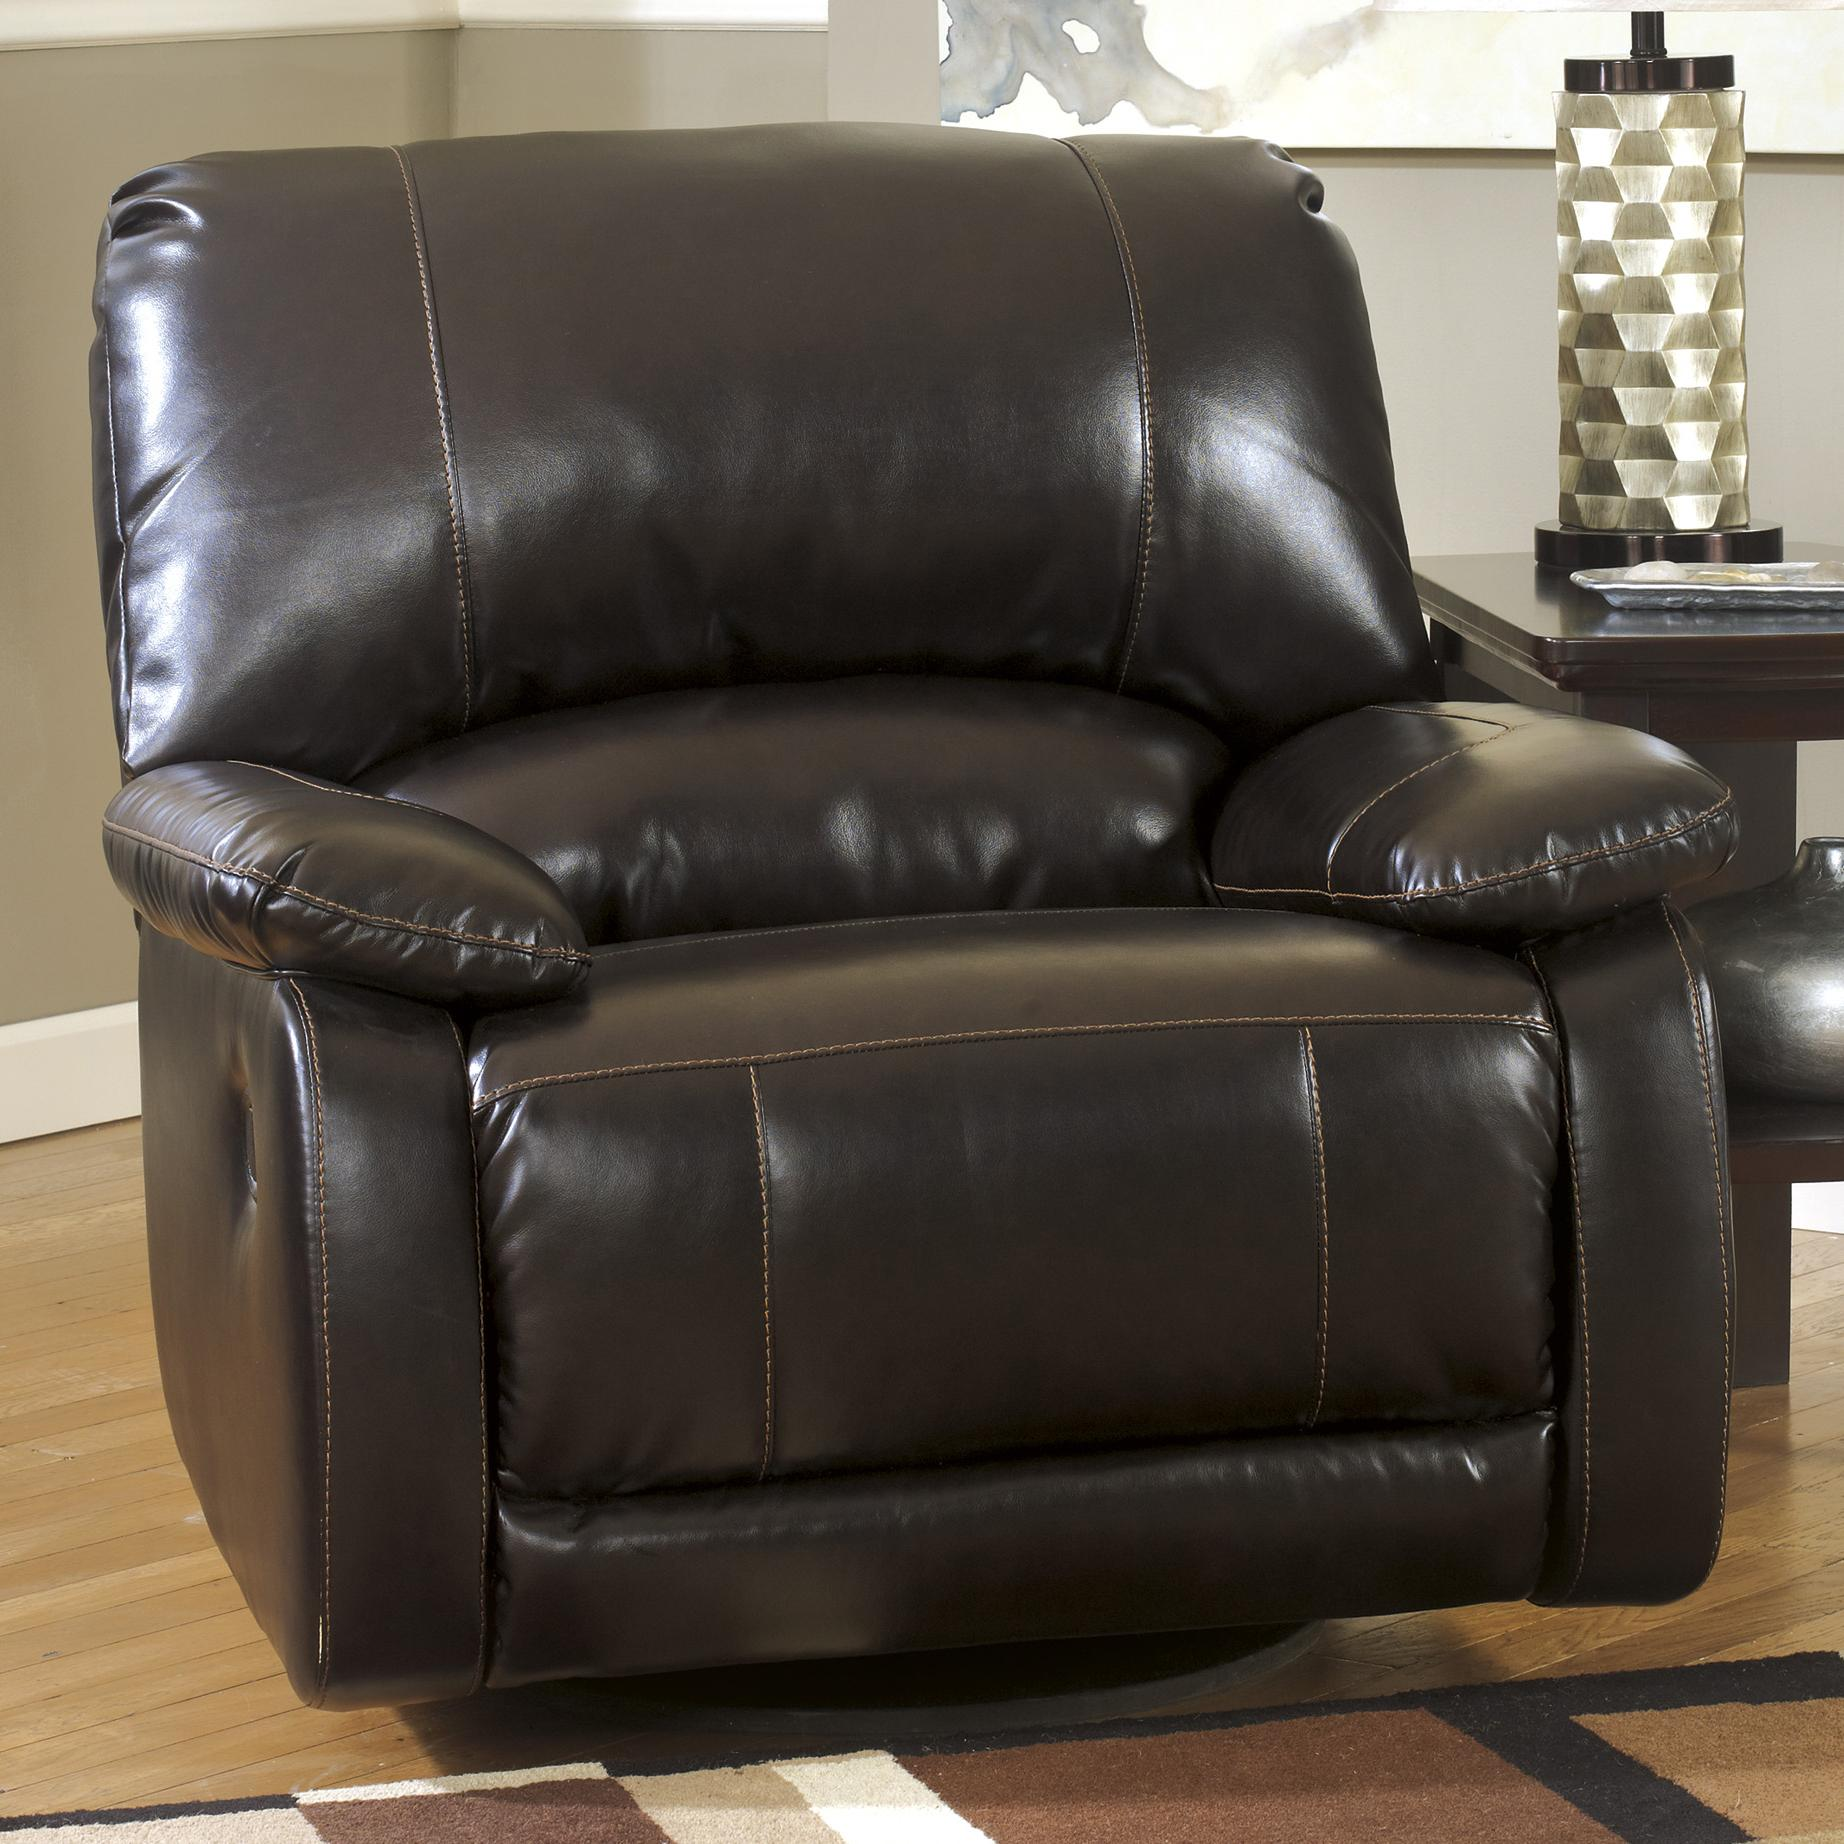 Signature Design by Ashley Capote DuraBlend® - Chocolate Swivel Glider Recliner - Item Number: 4450061